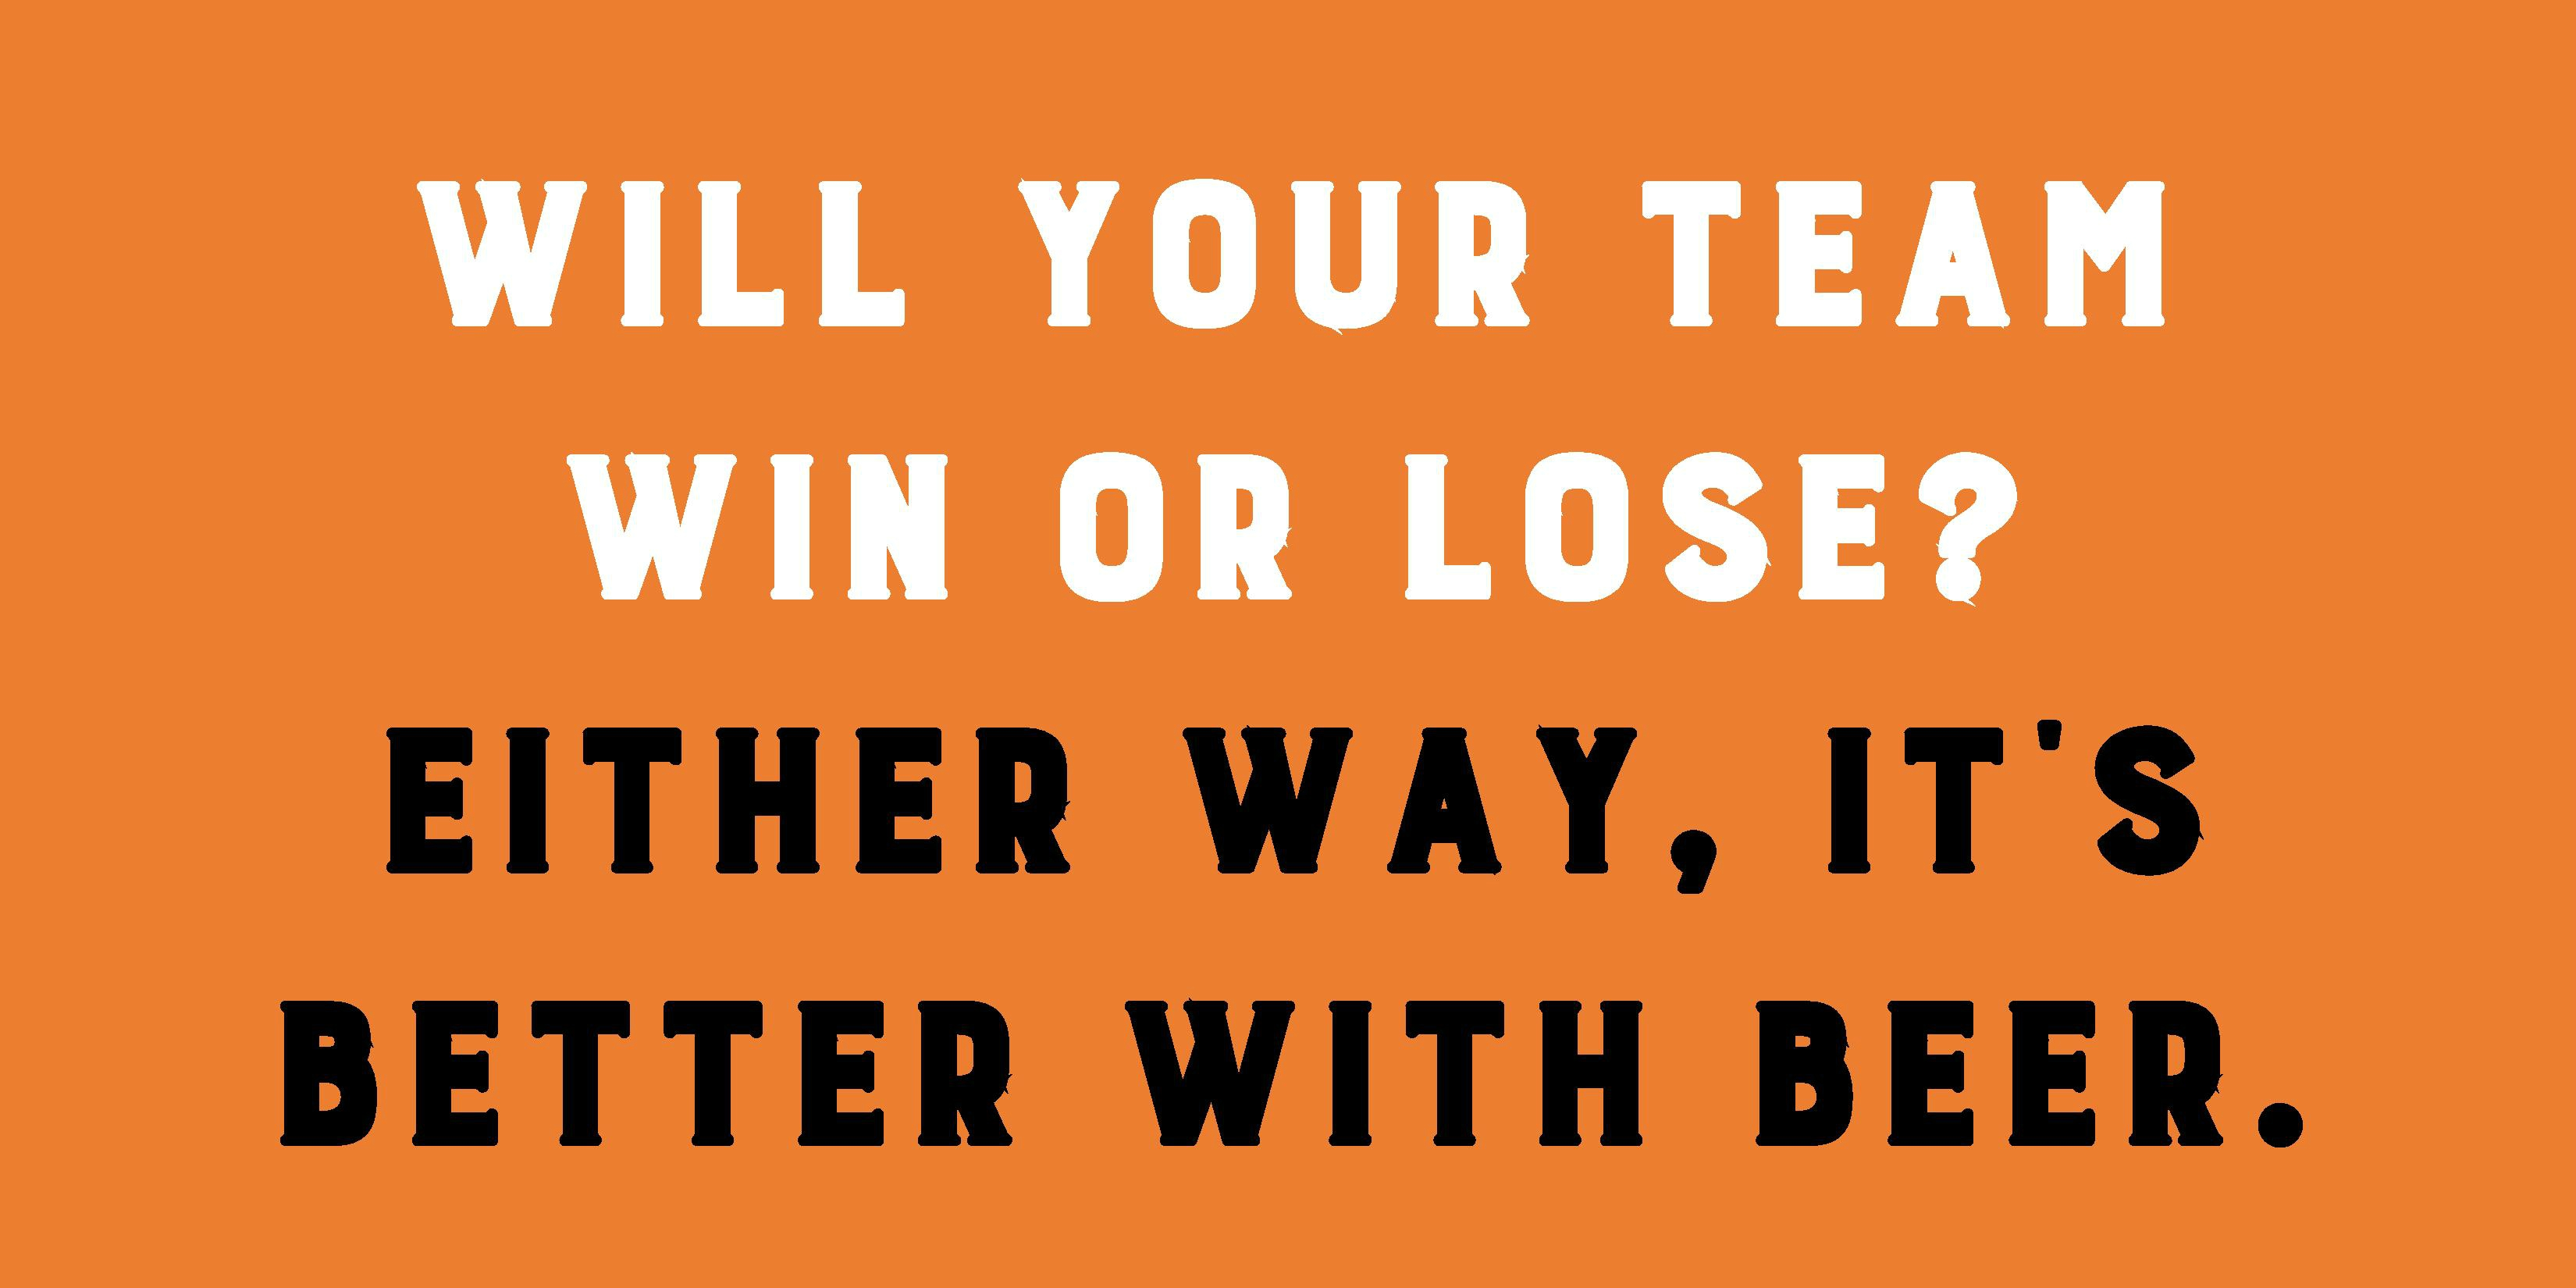 Will your team  win or lose?  Either way, it's better with beer.